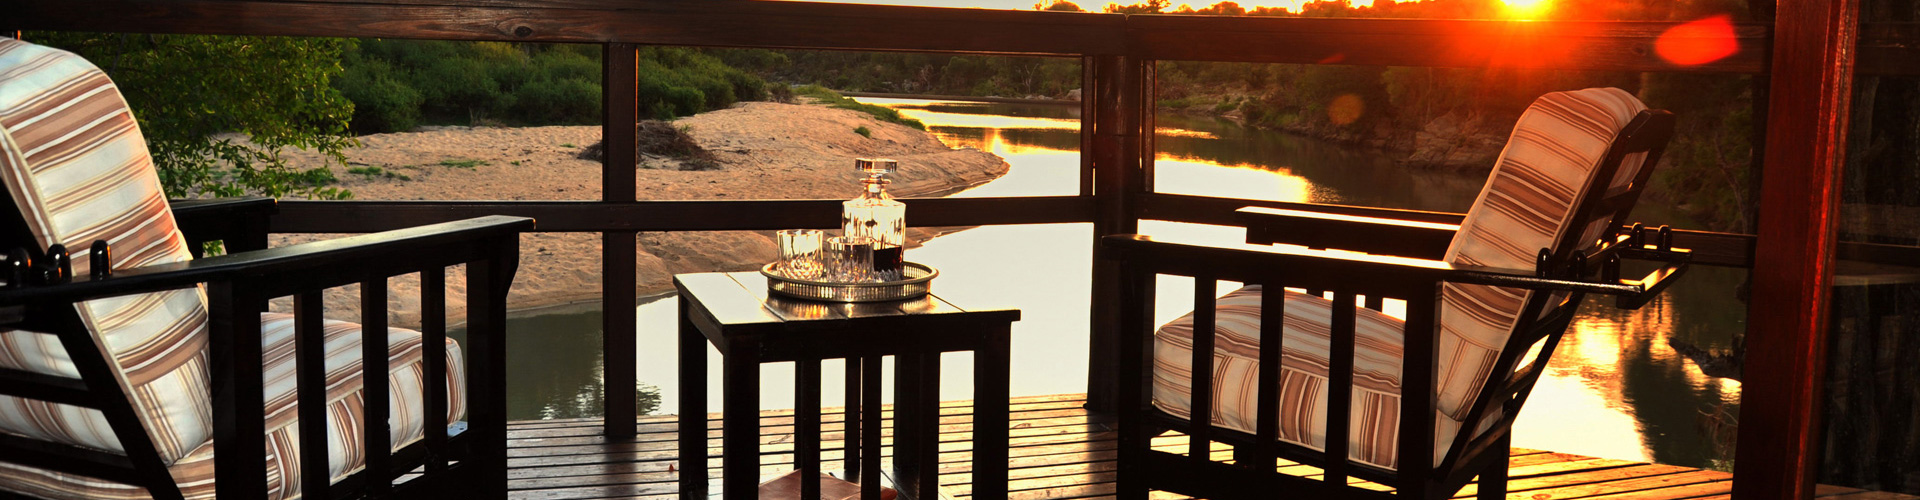 Hamilton's-Tented-Camp-Sunset-View-from-the-Deck